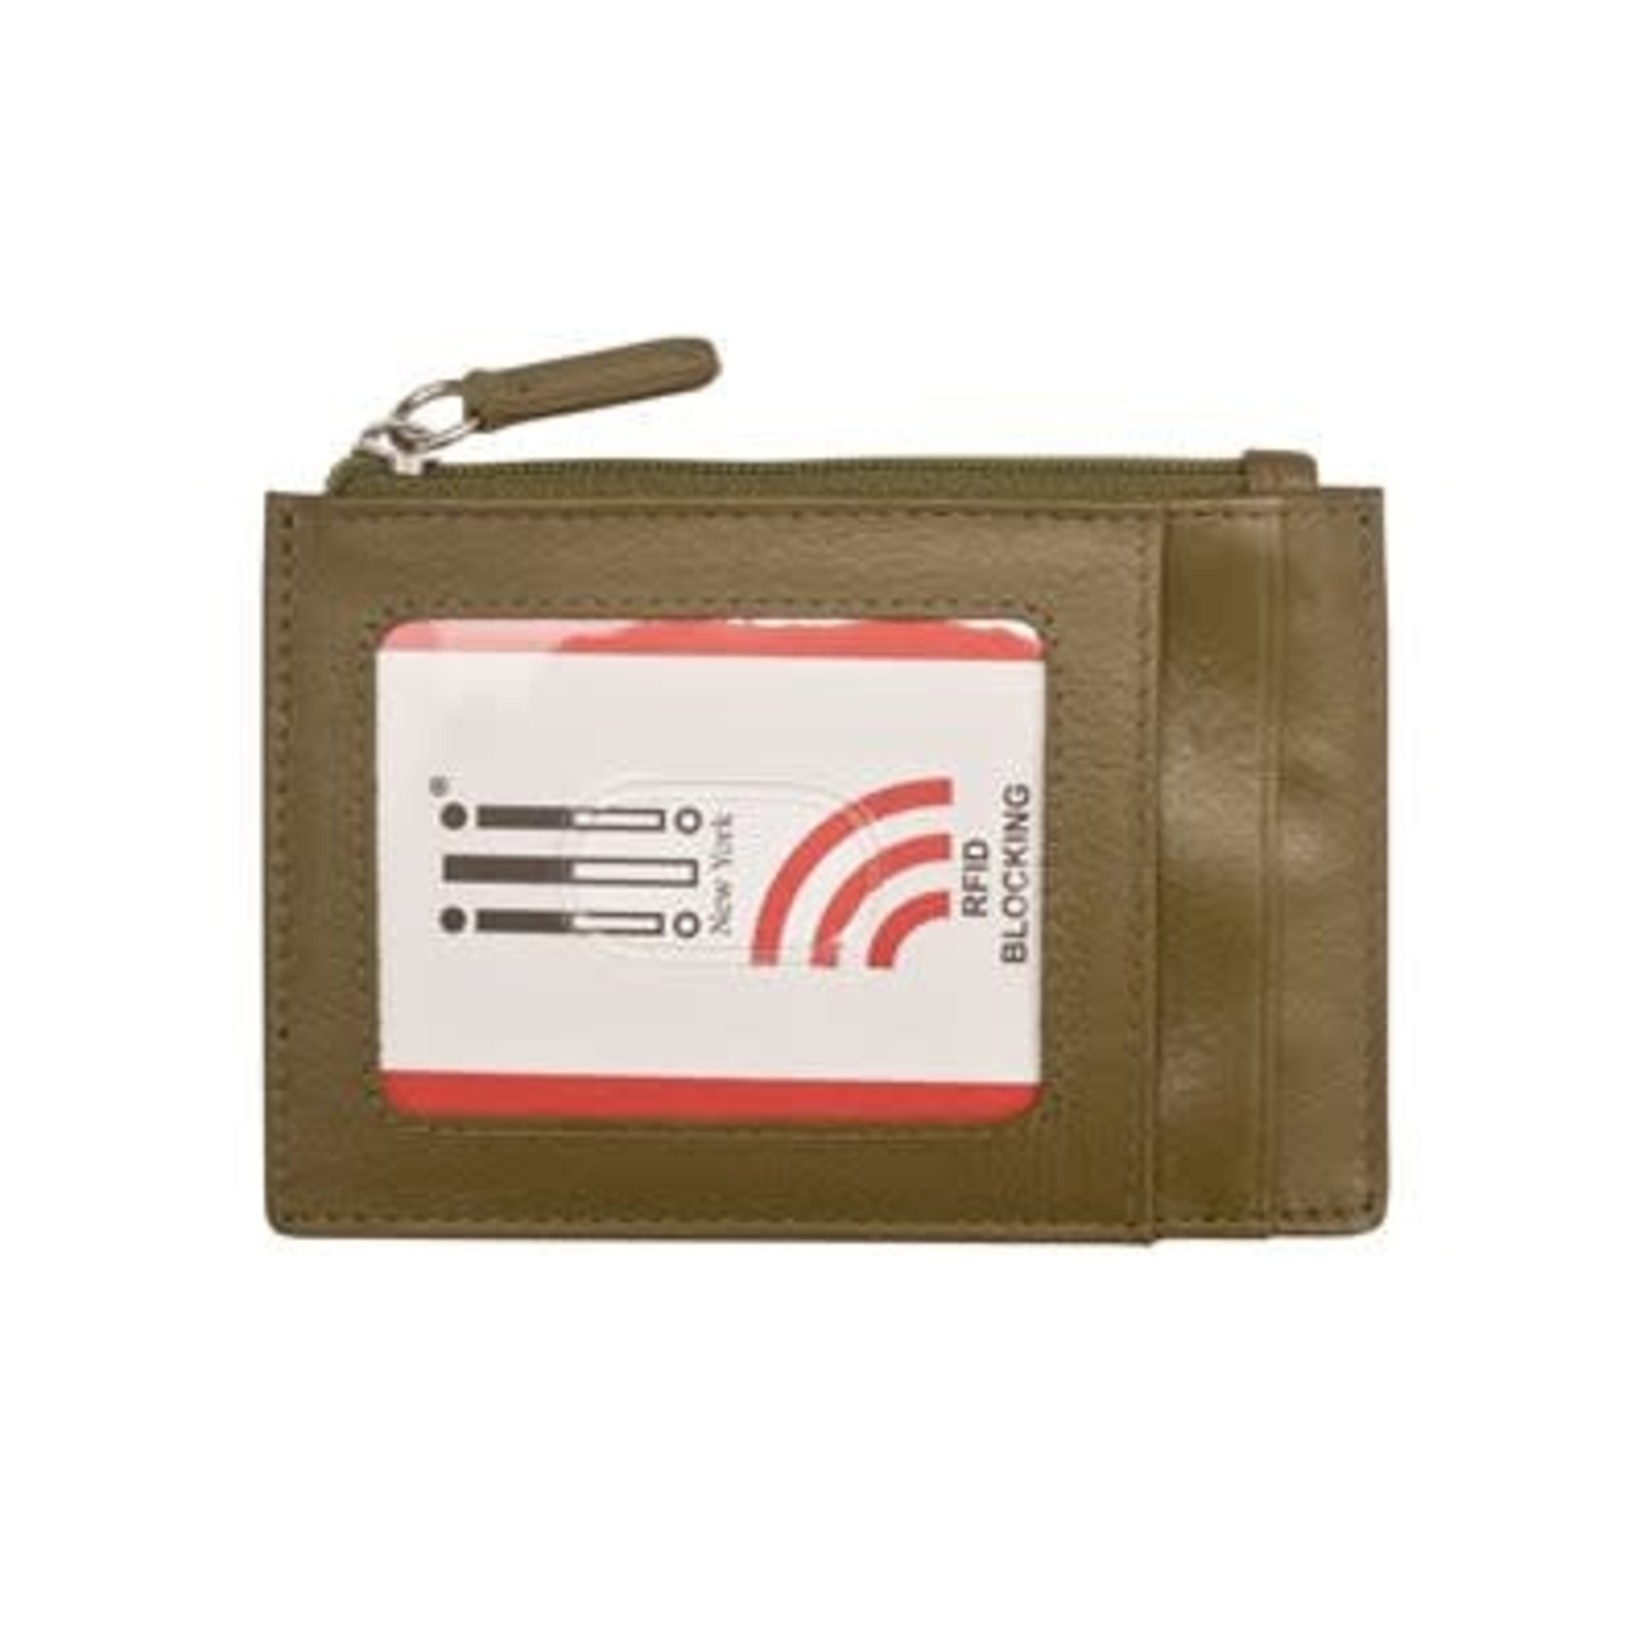 Leather Handbags and Accessories 7416 Olive - RFID Card Holder